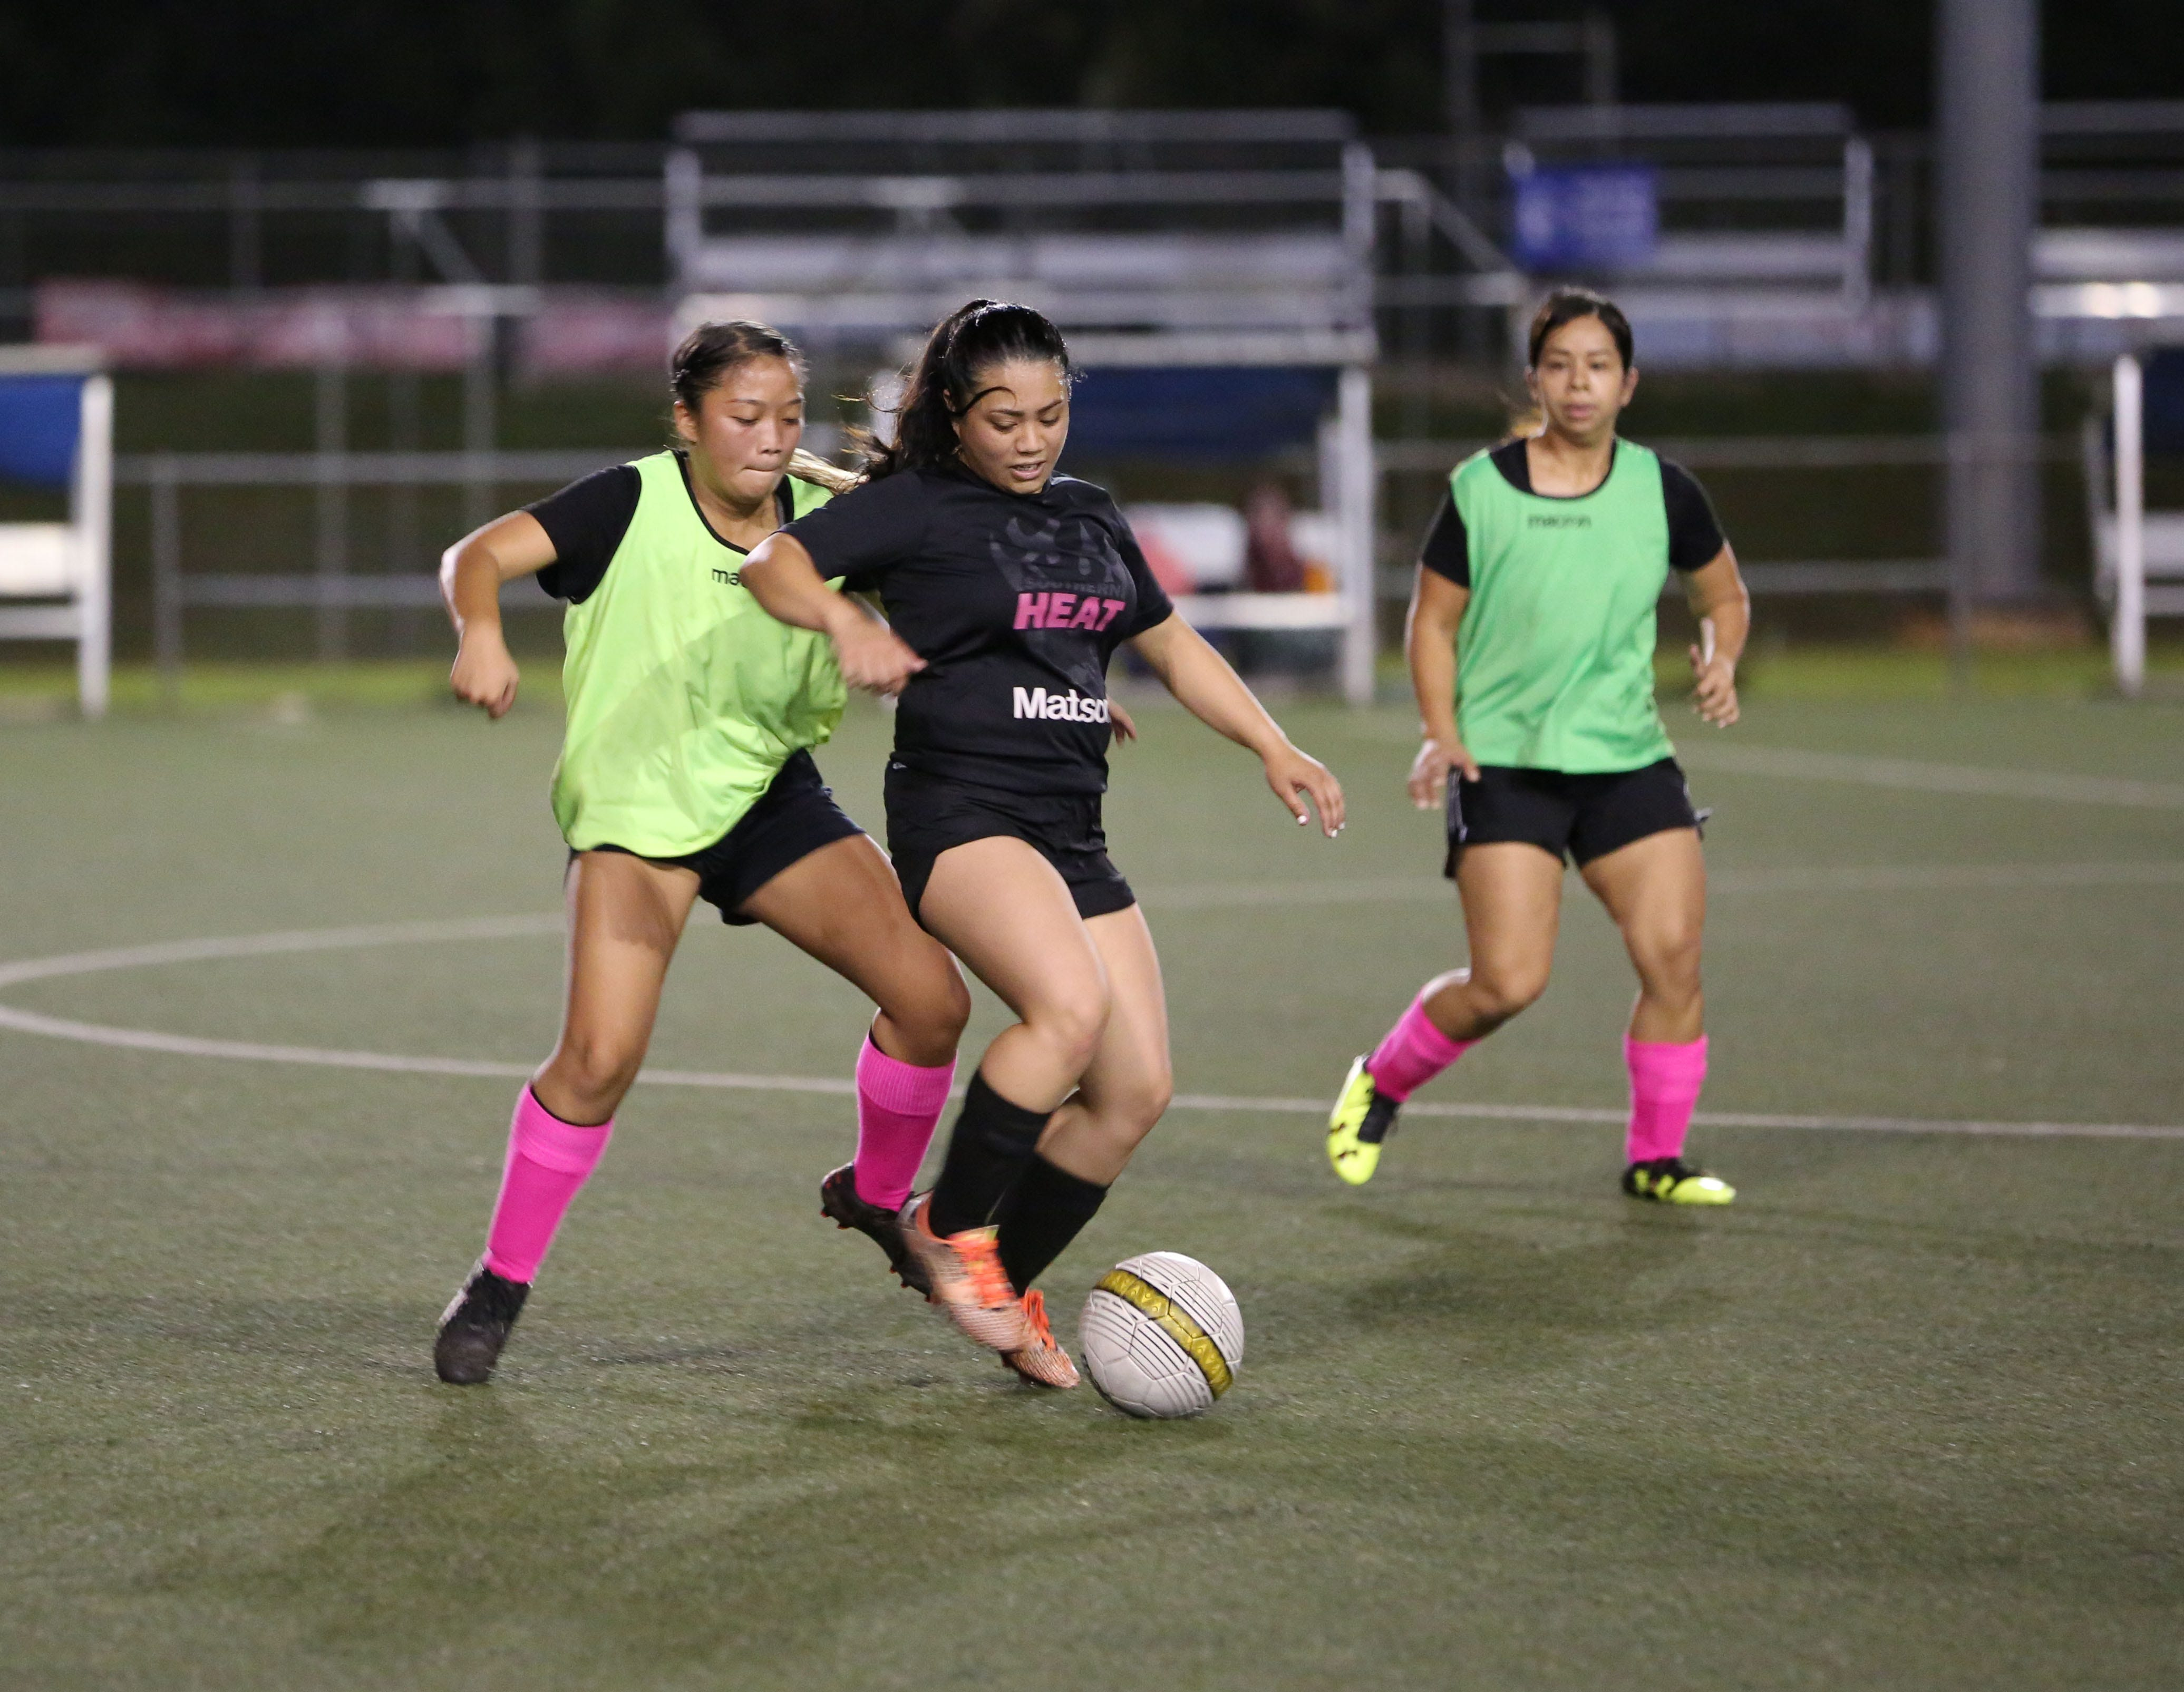 Cars Plus and Southern Heat play in an opening day match of the Guam Football Association Women's Recreational League Sunday at the Guam Football Association National Training Center.